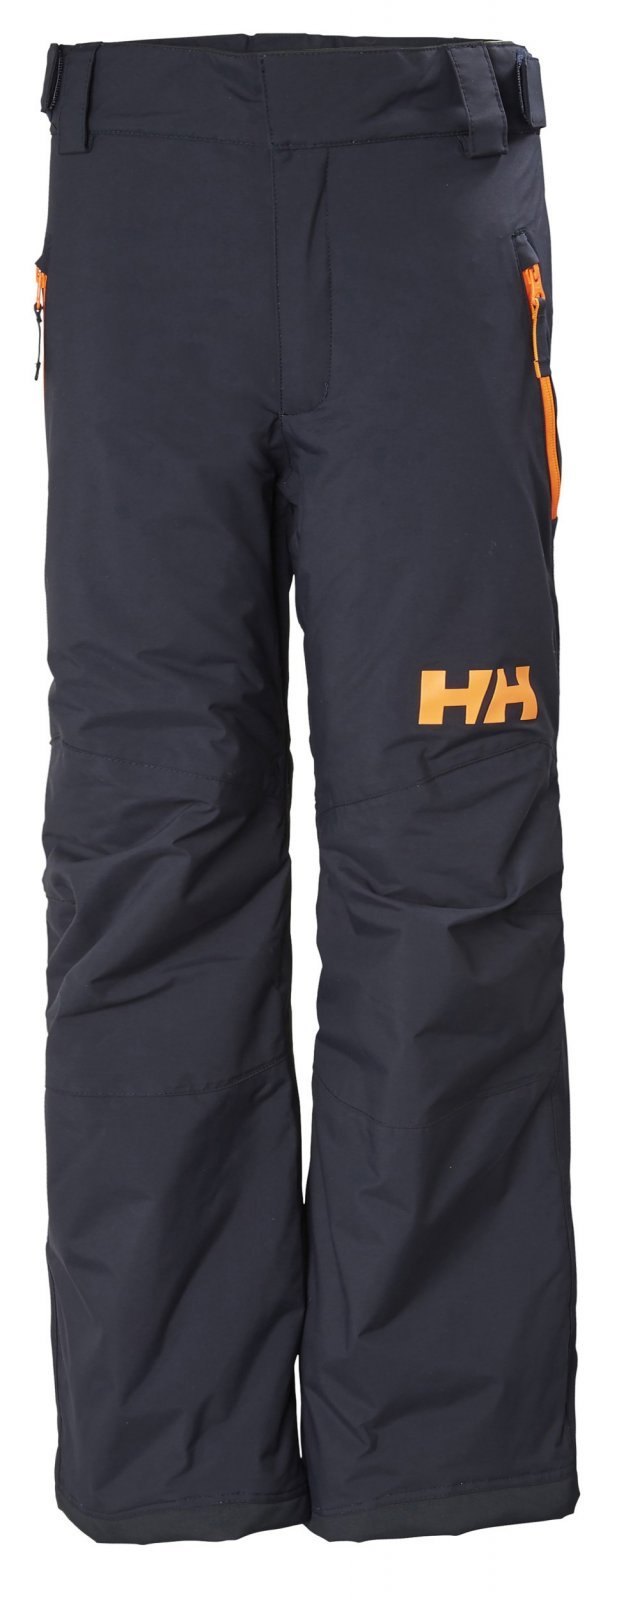 HH Jr Youth Legendary Pant 19/20